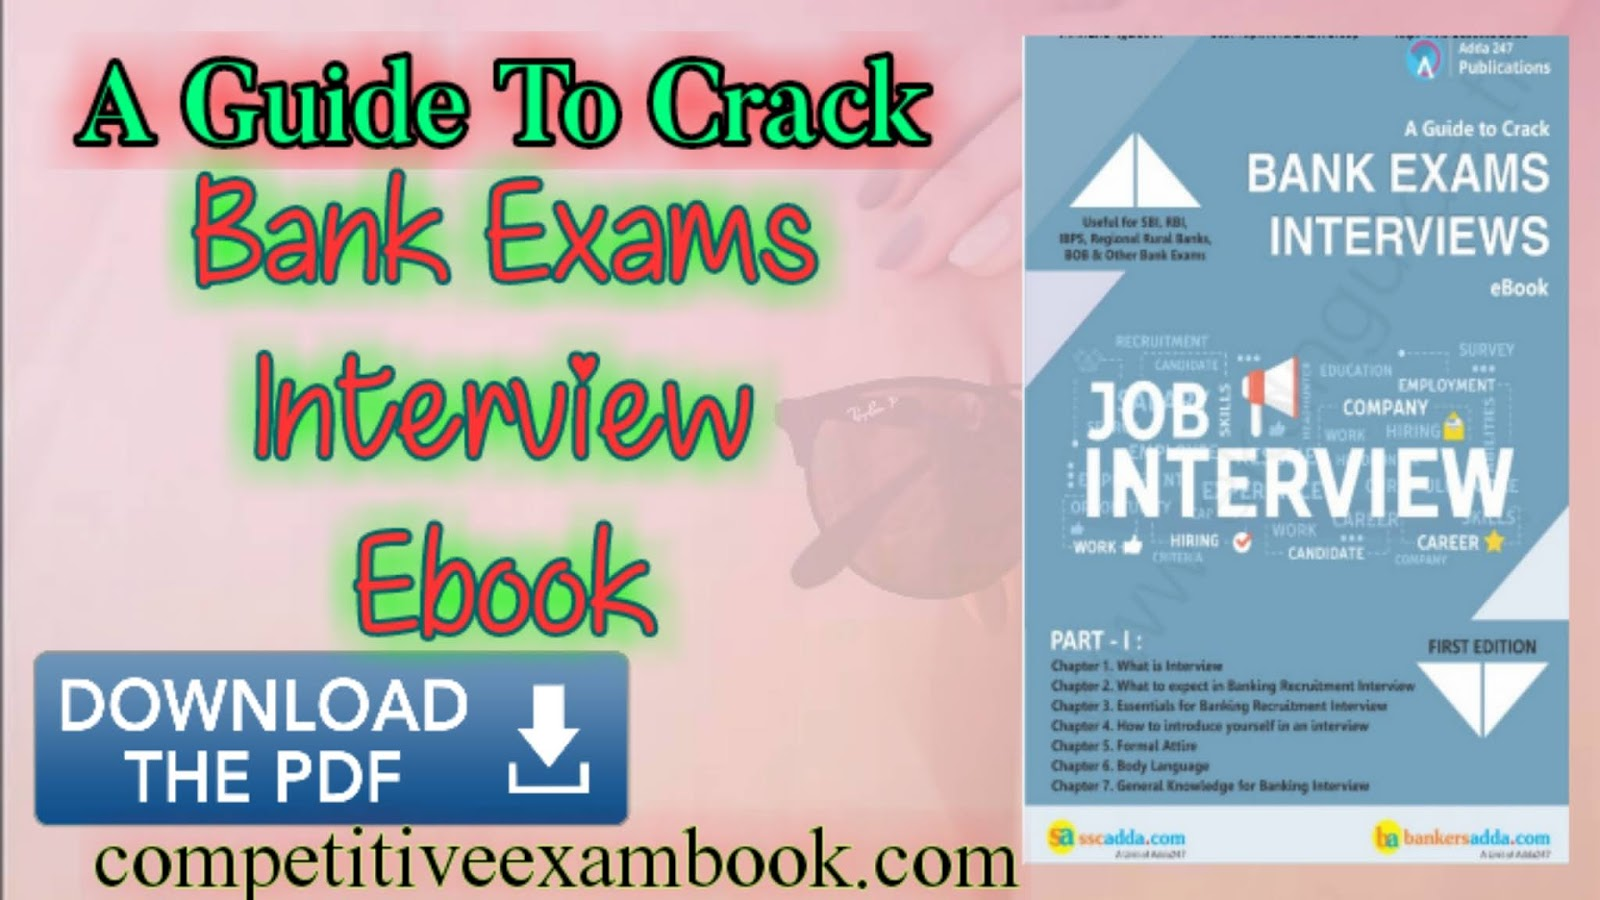 A Guide To Crack Bank Exams Interview eBook by Adda247 Publications